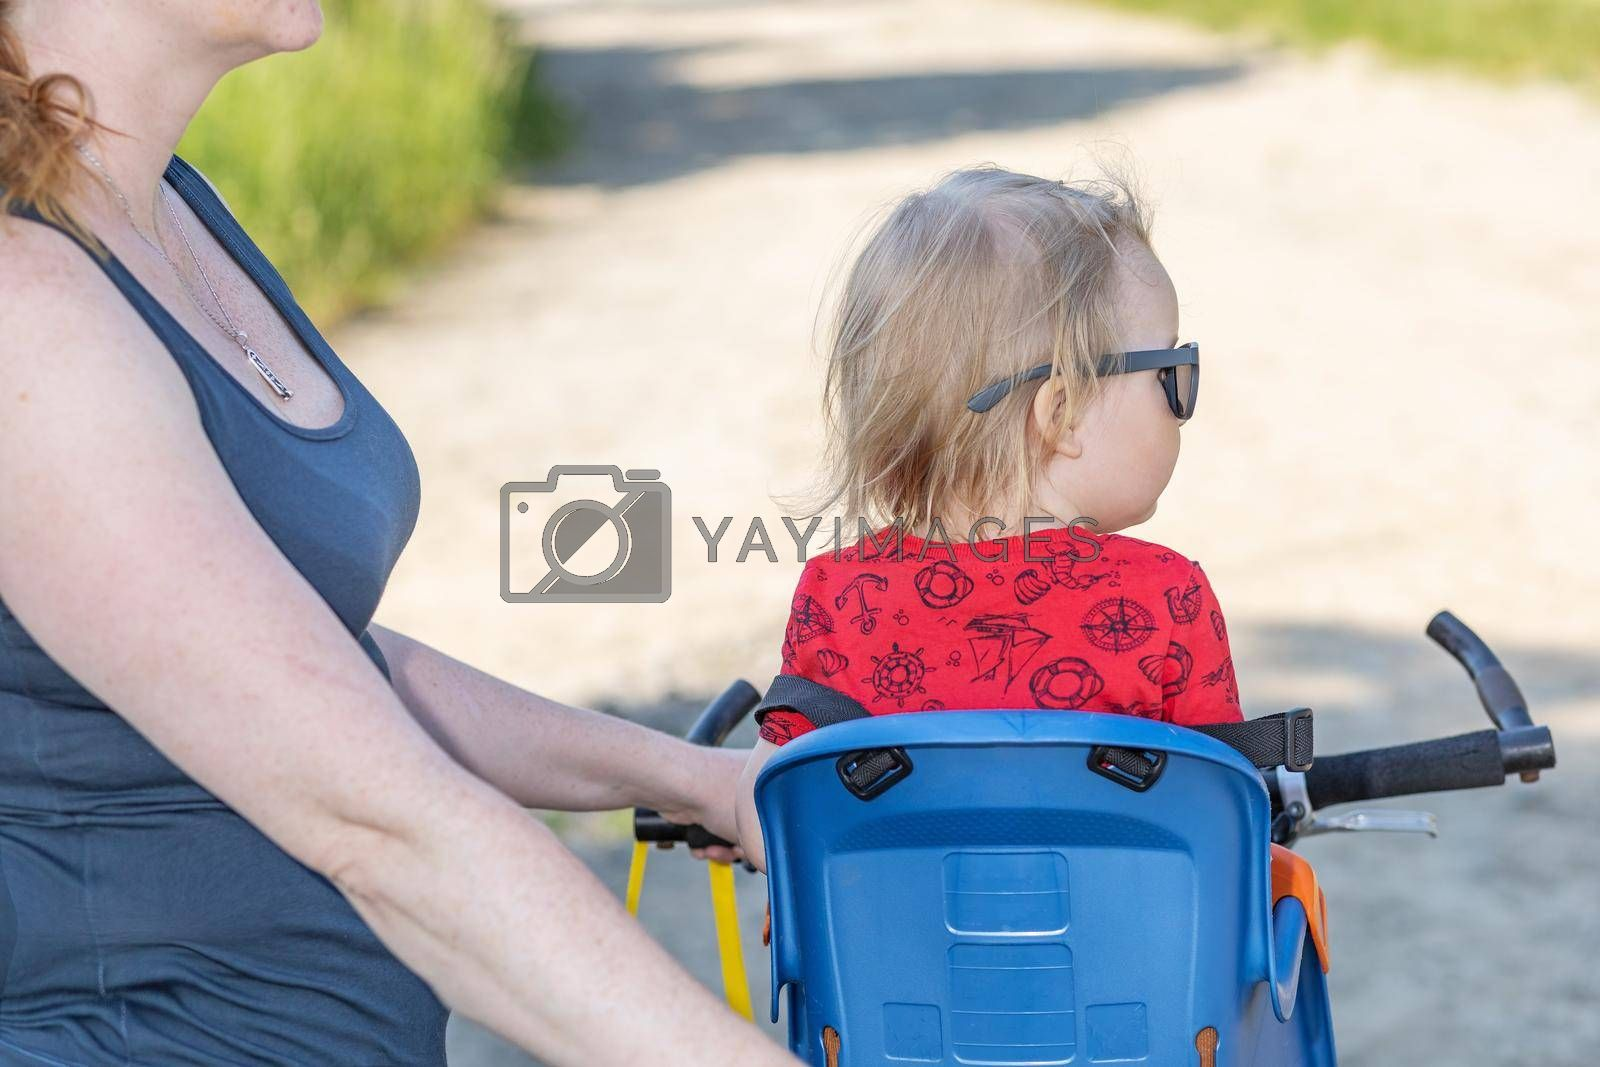 Royalty free image of Back view of little boy sitting in bicycle seat without safety helmet by Frank11